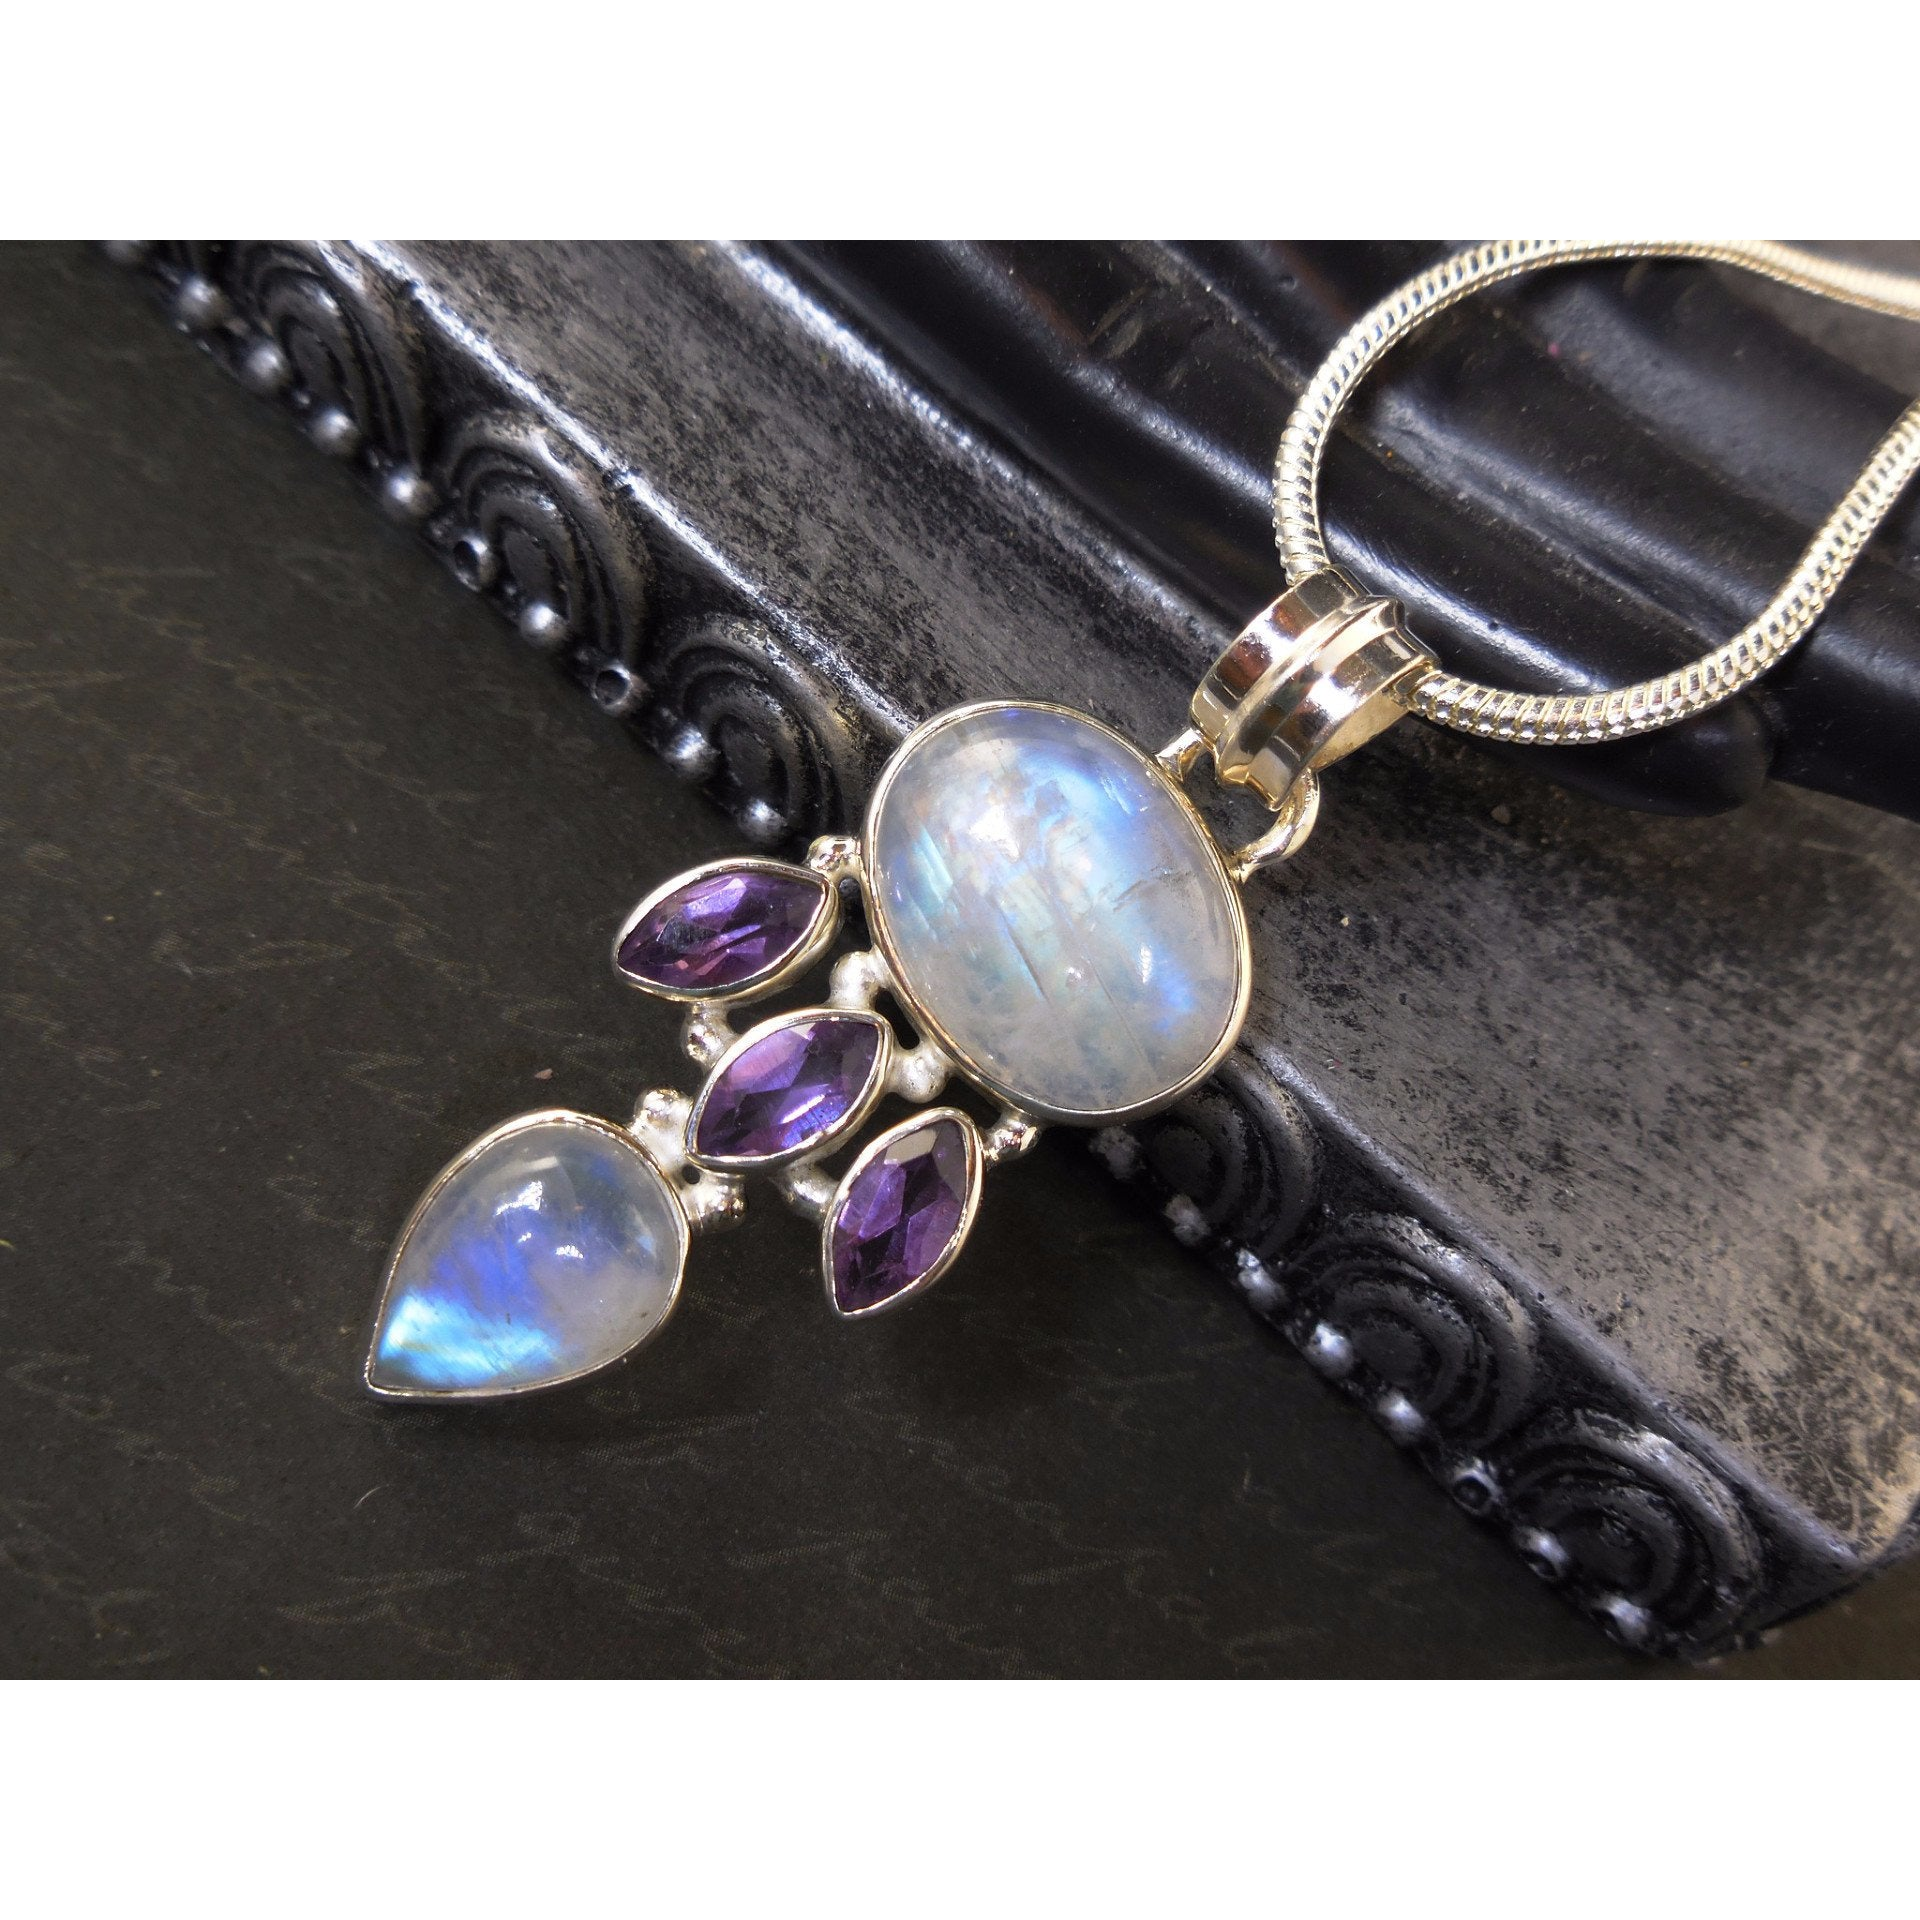 Moonstone & Amethyst Quartz Sterling Silver Pendant/Necklace